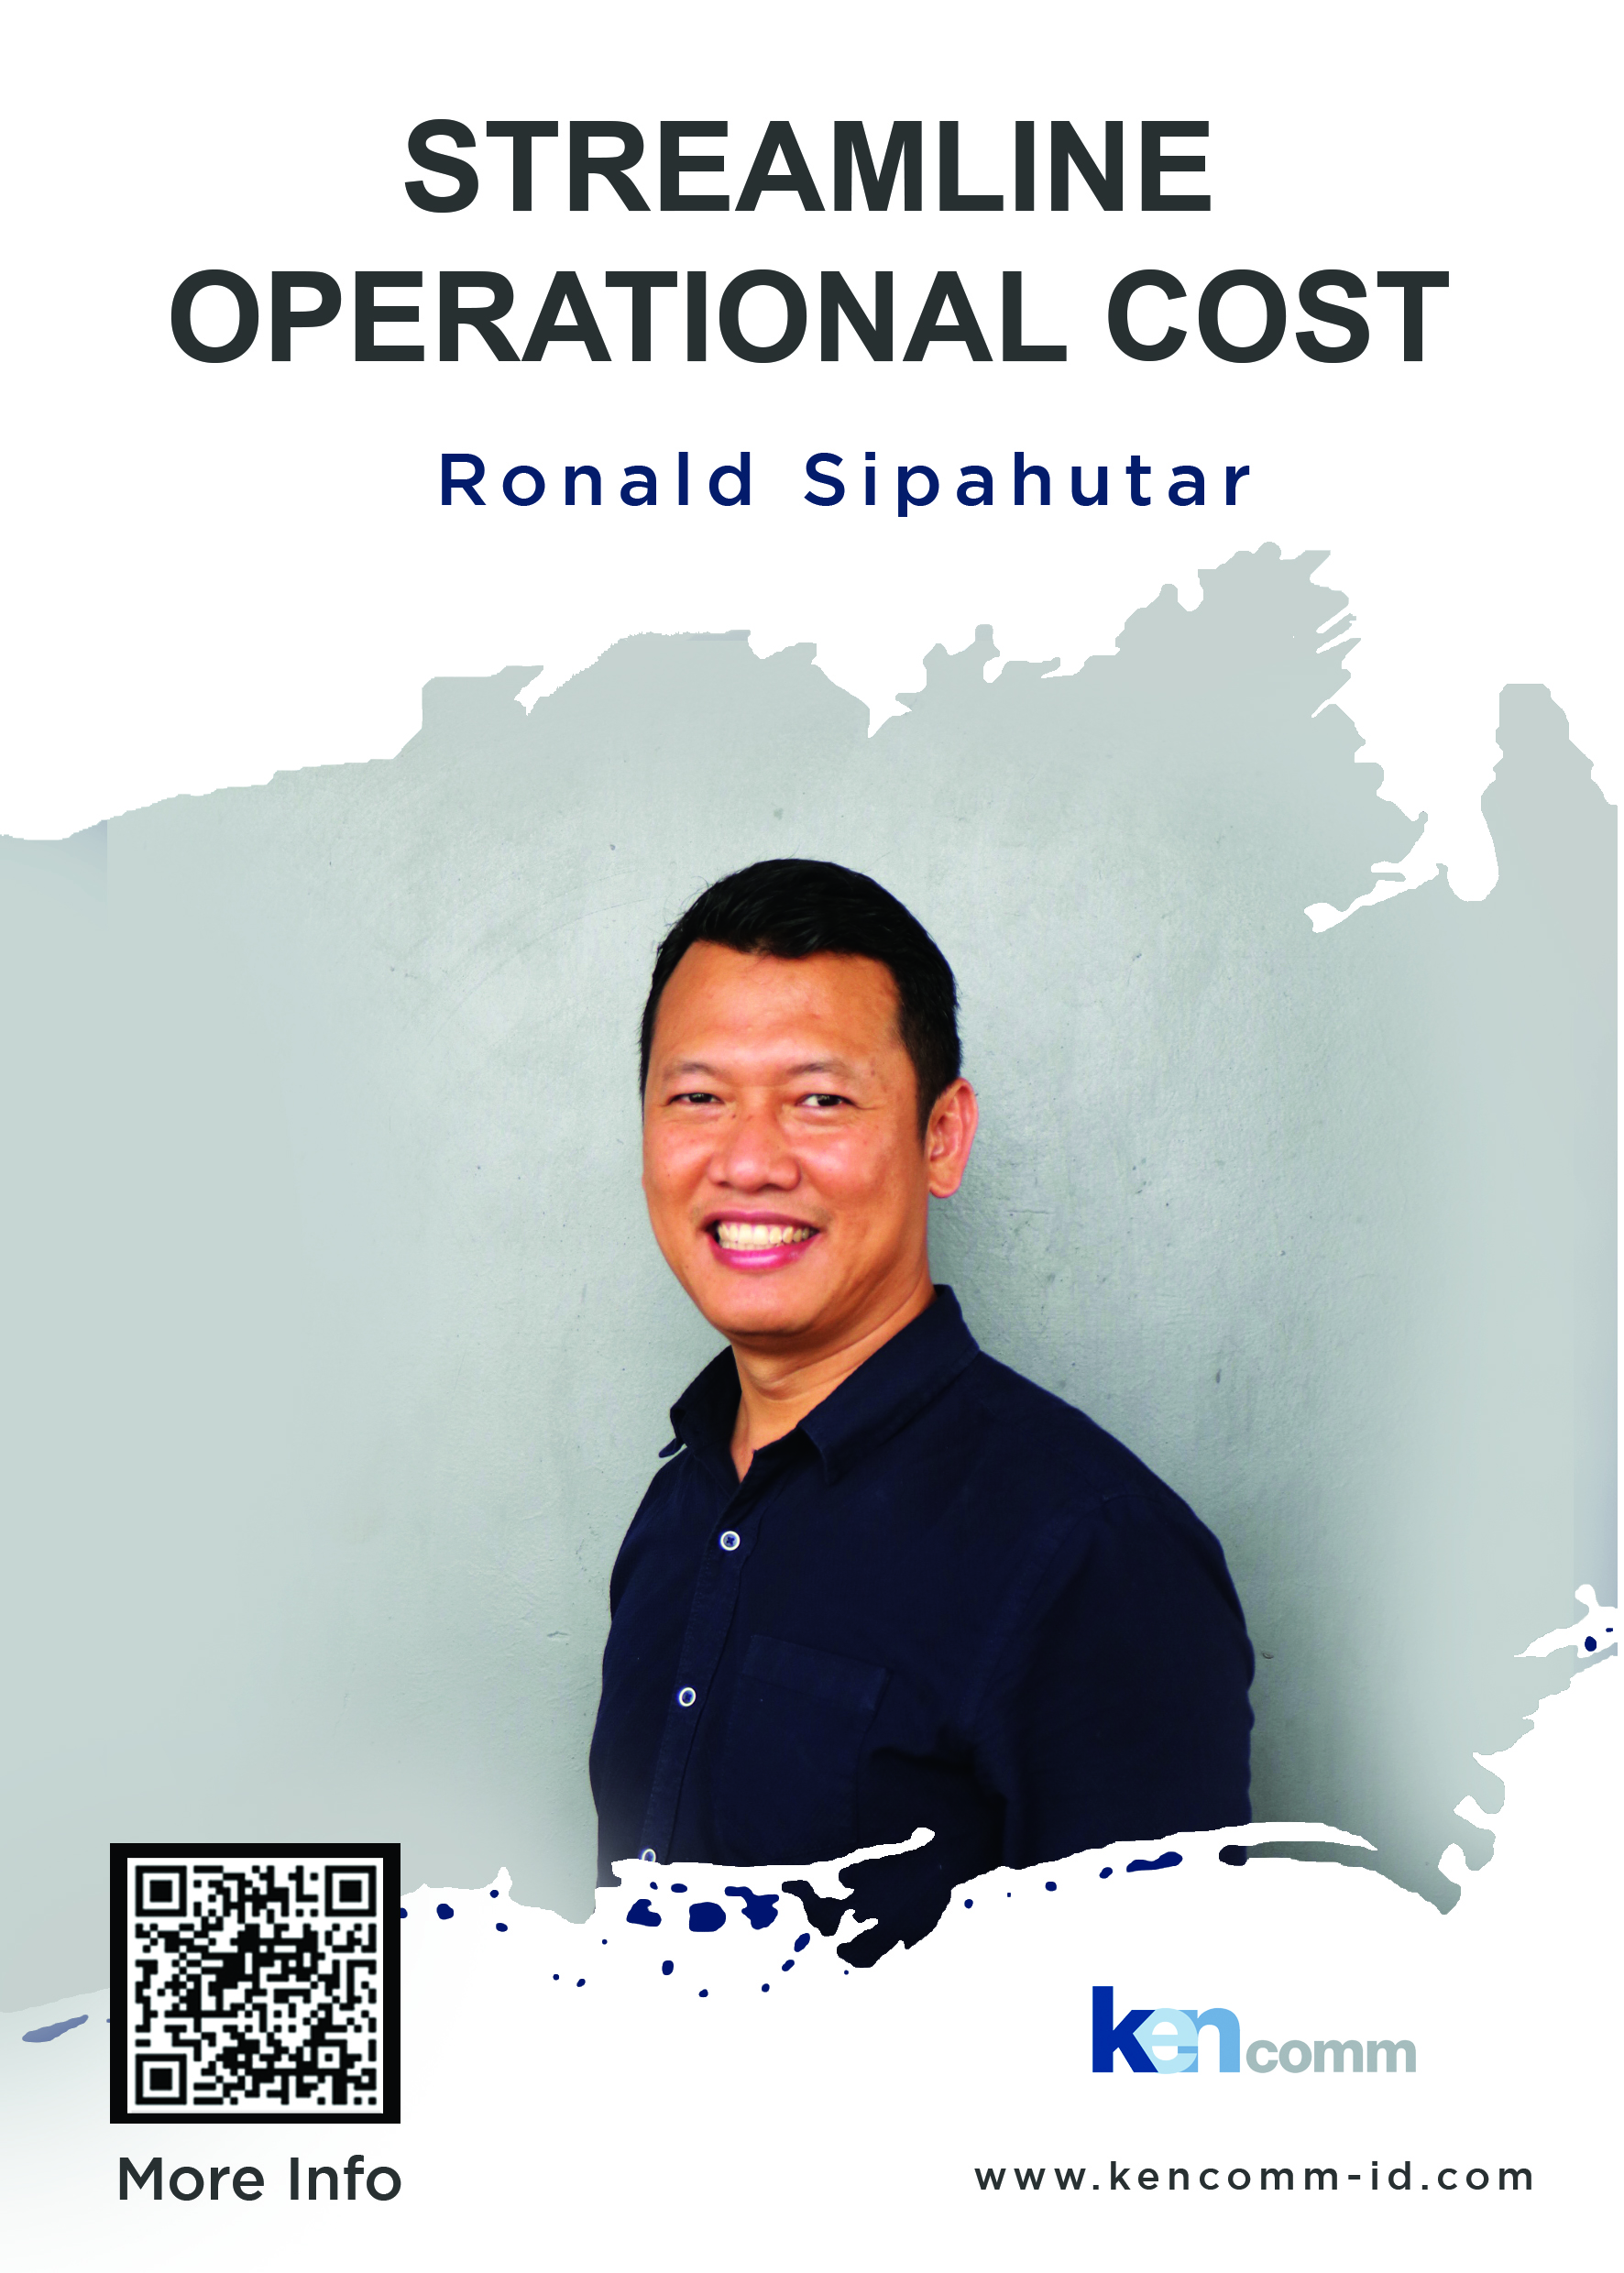 streamline operational cost-Ronald